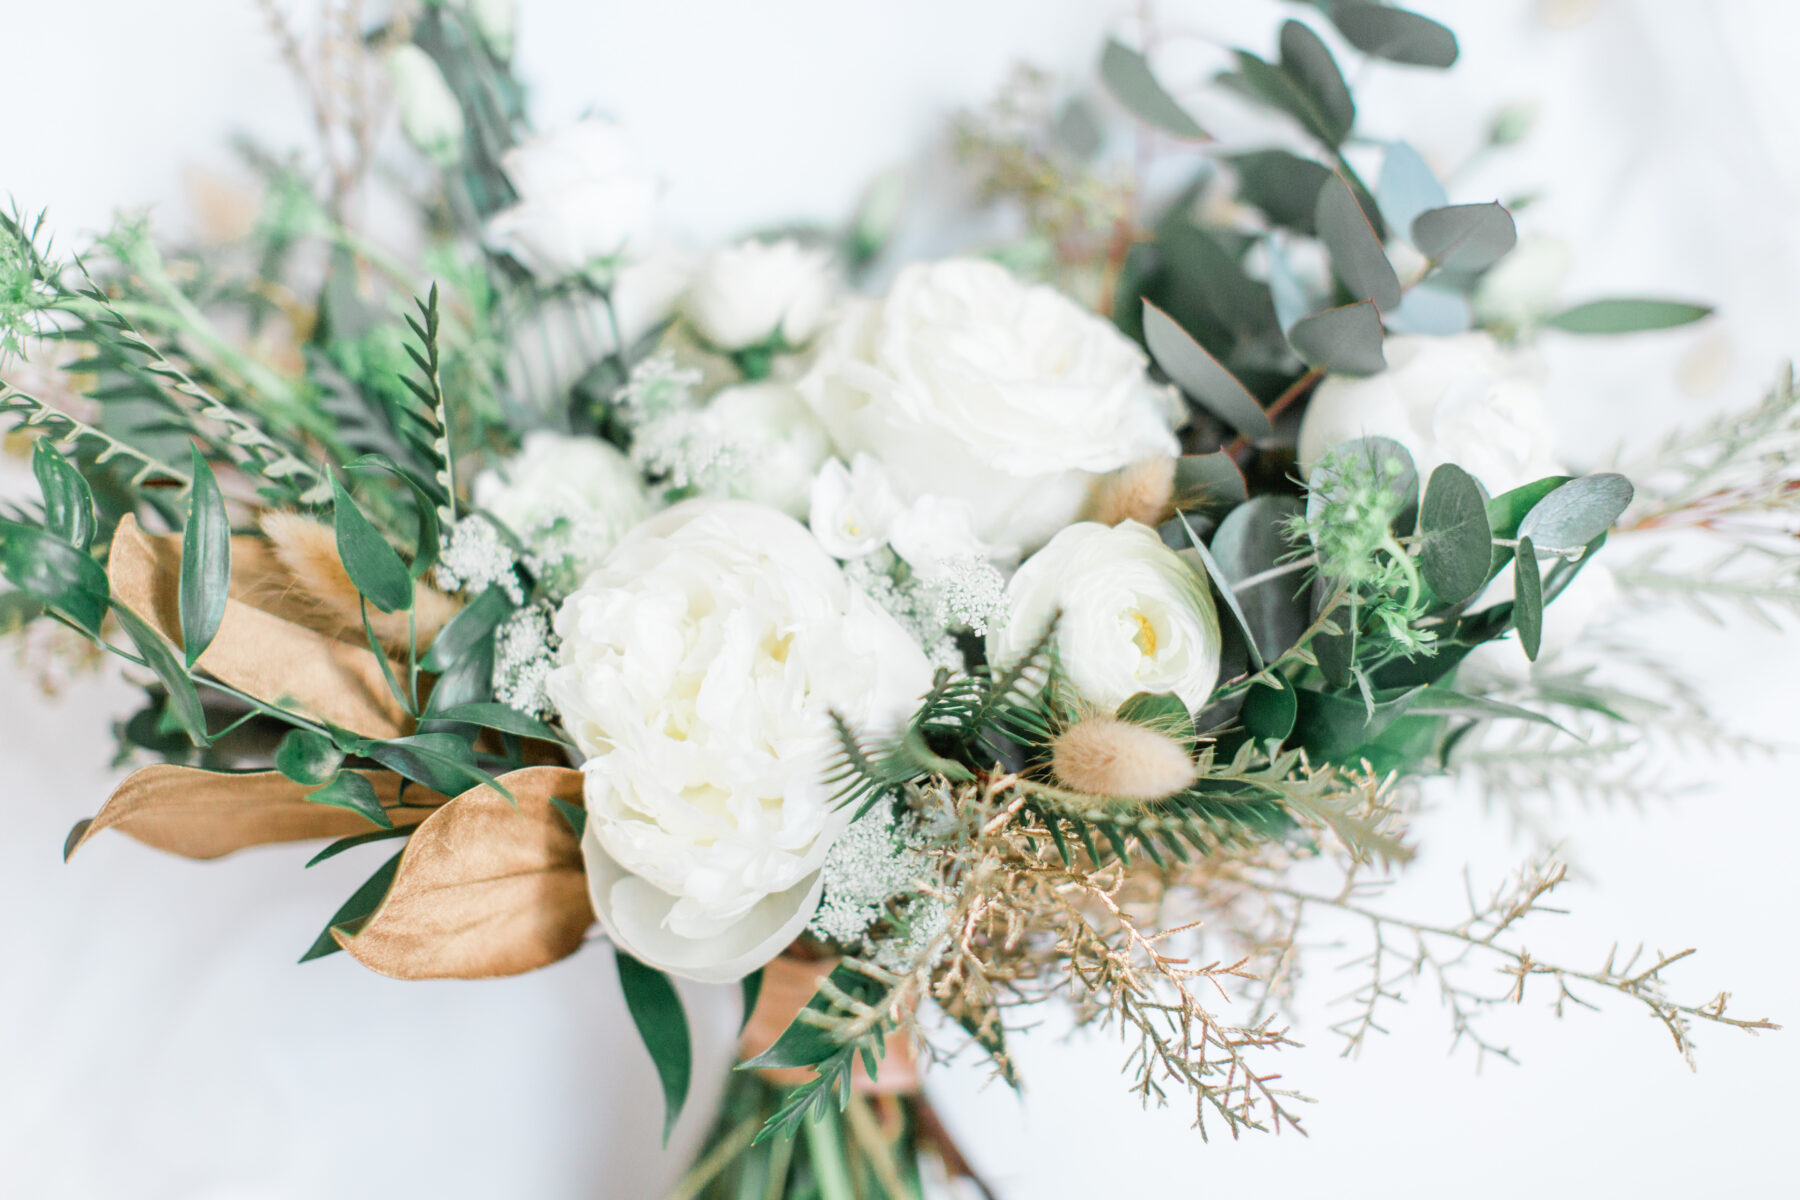 White and greenery wedding table decor: Classic, Yet Modern New Years Eve Wedding Inspiration featured on Nashville Bride Guide